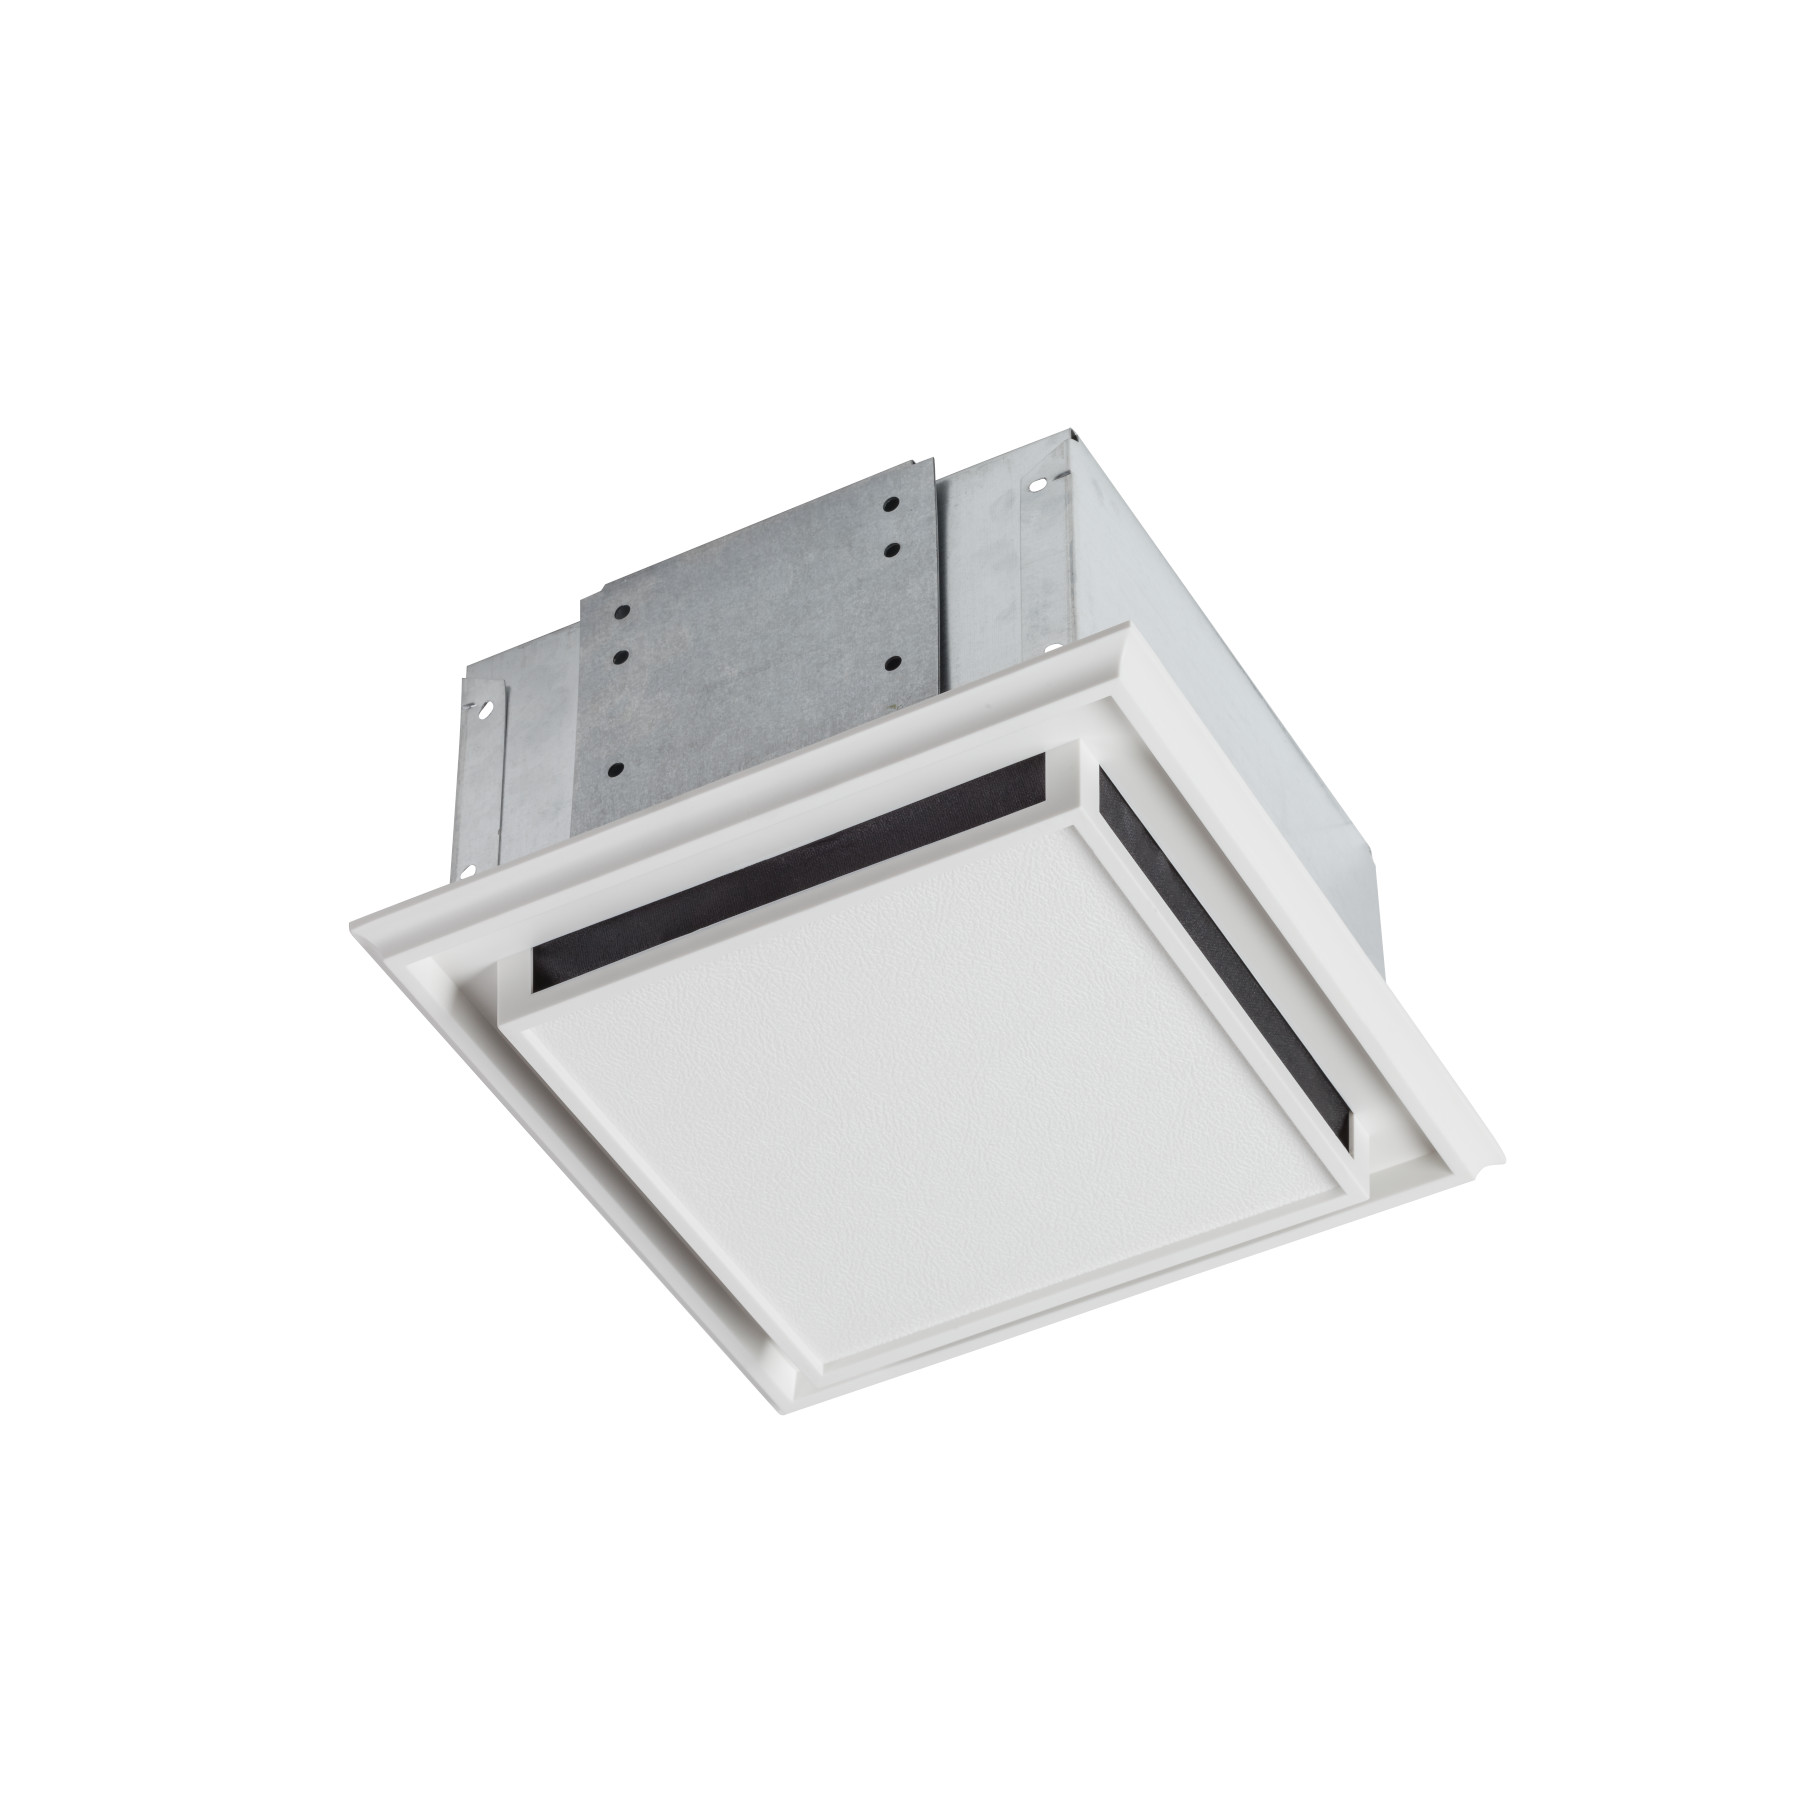 Broan® Duct-free Ventilation Fan with plastic grille, snap-in mounting and charcoal filter